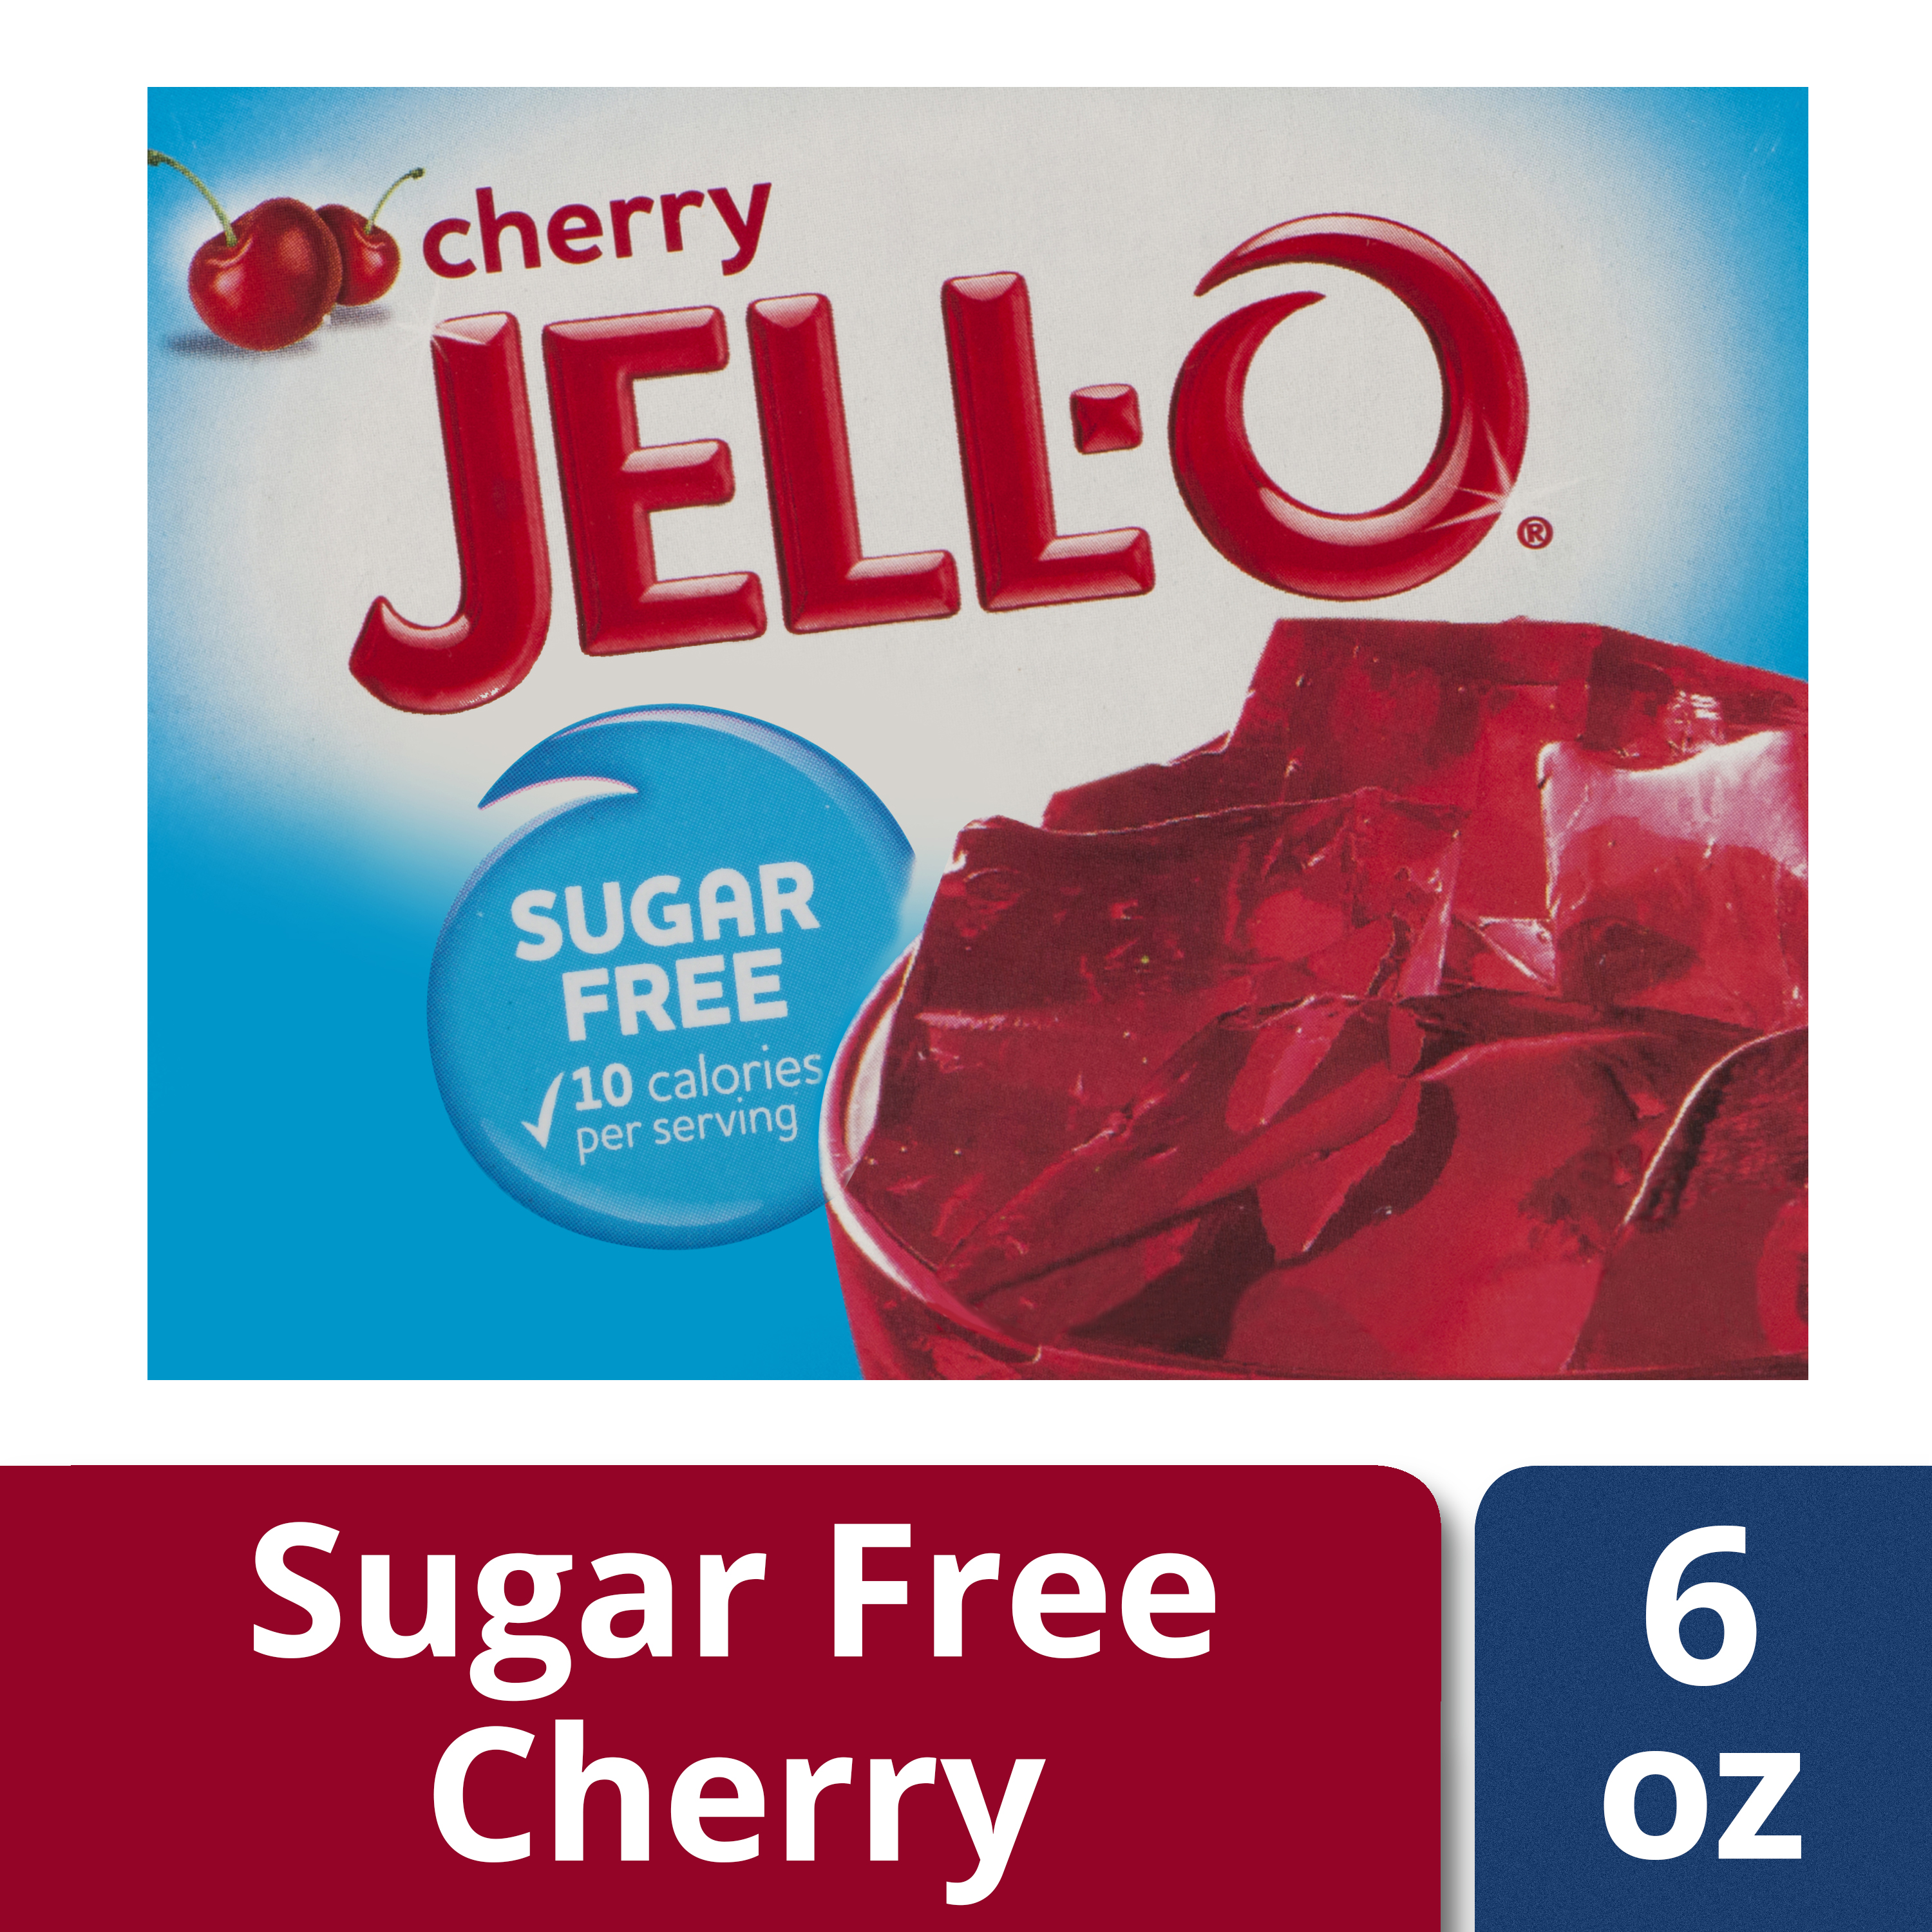 (3 Pack) Jell-O Cherry Sugar Free Gelatin Mix, 0.6 oz Box